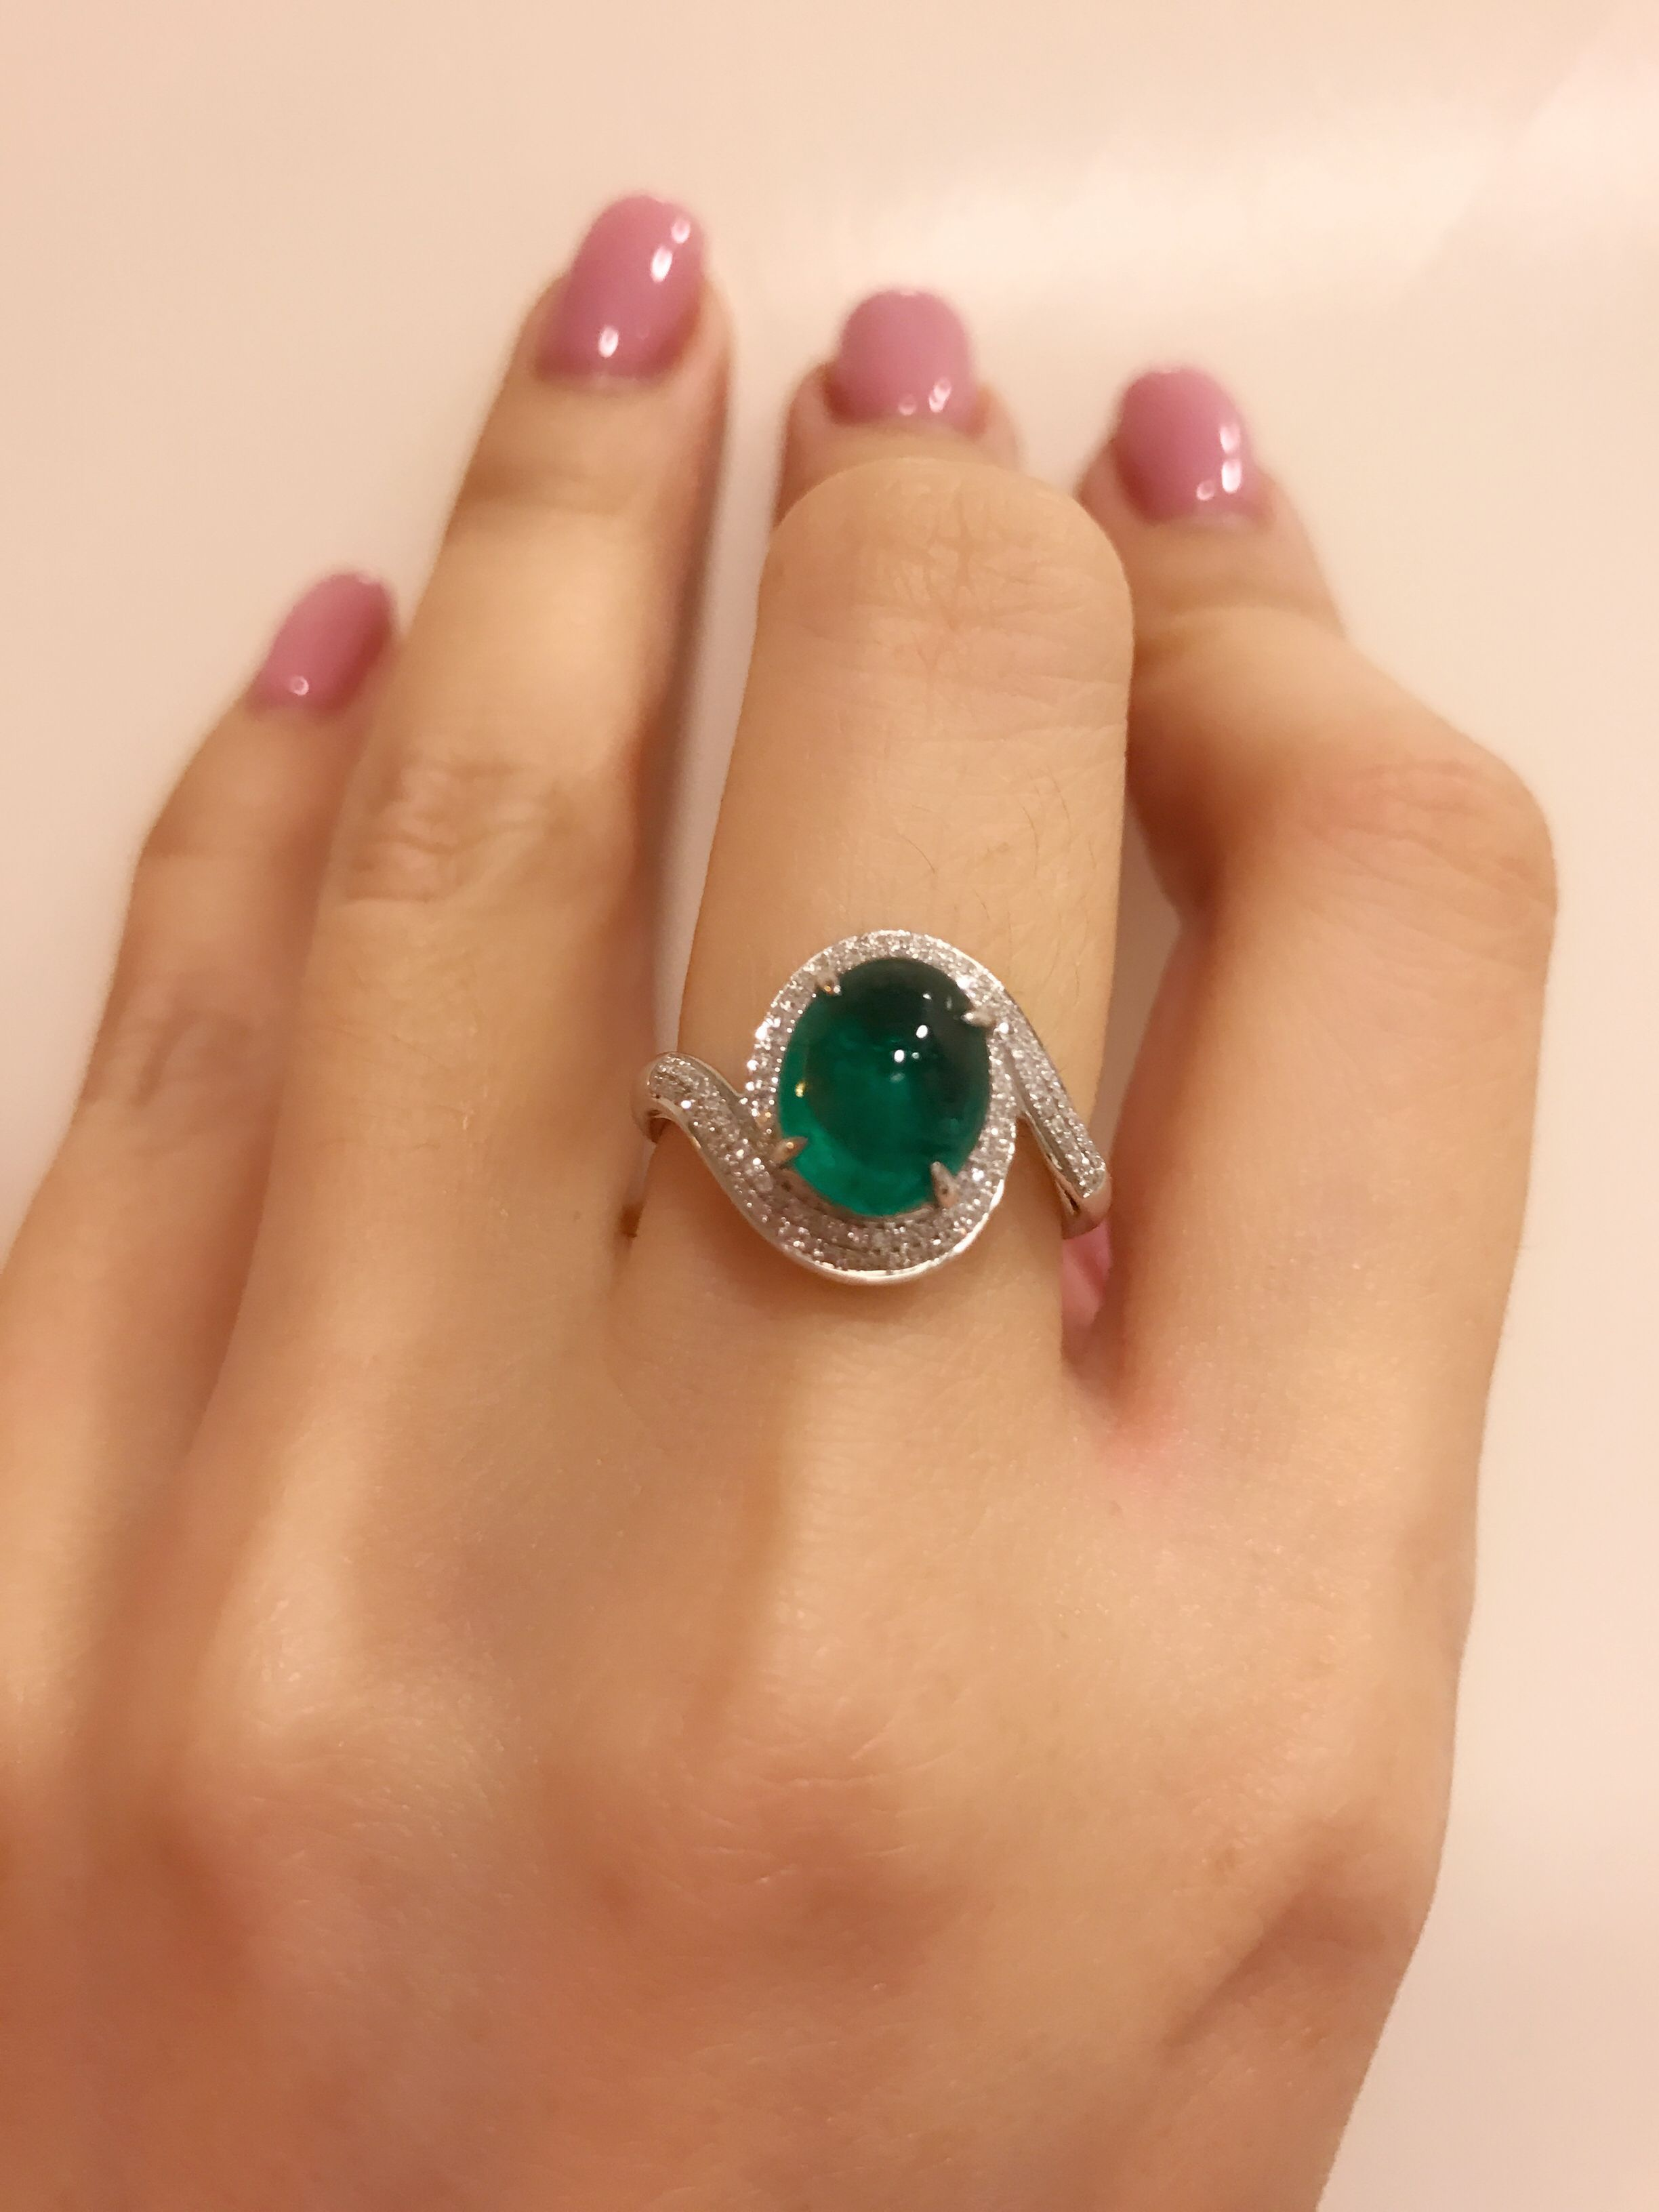 Vivid Green Oval Cabochon Emerald And Diamond Ring The Color Is Really Pretty Like A Candy Gold Ring Designs Jewels Rings Jewelry